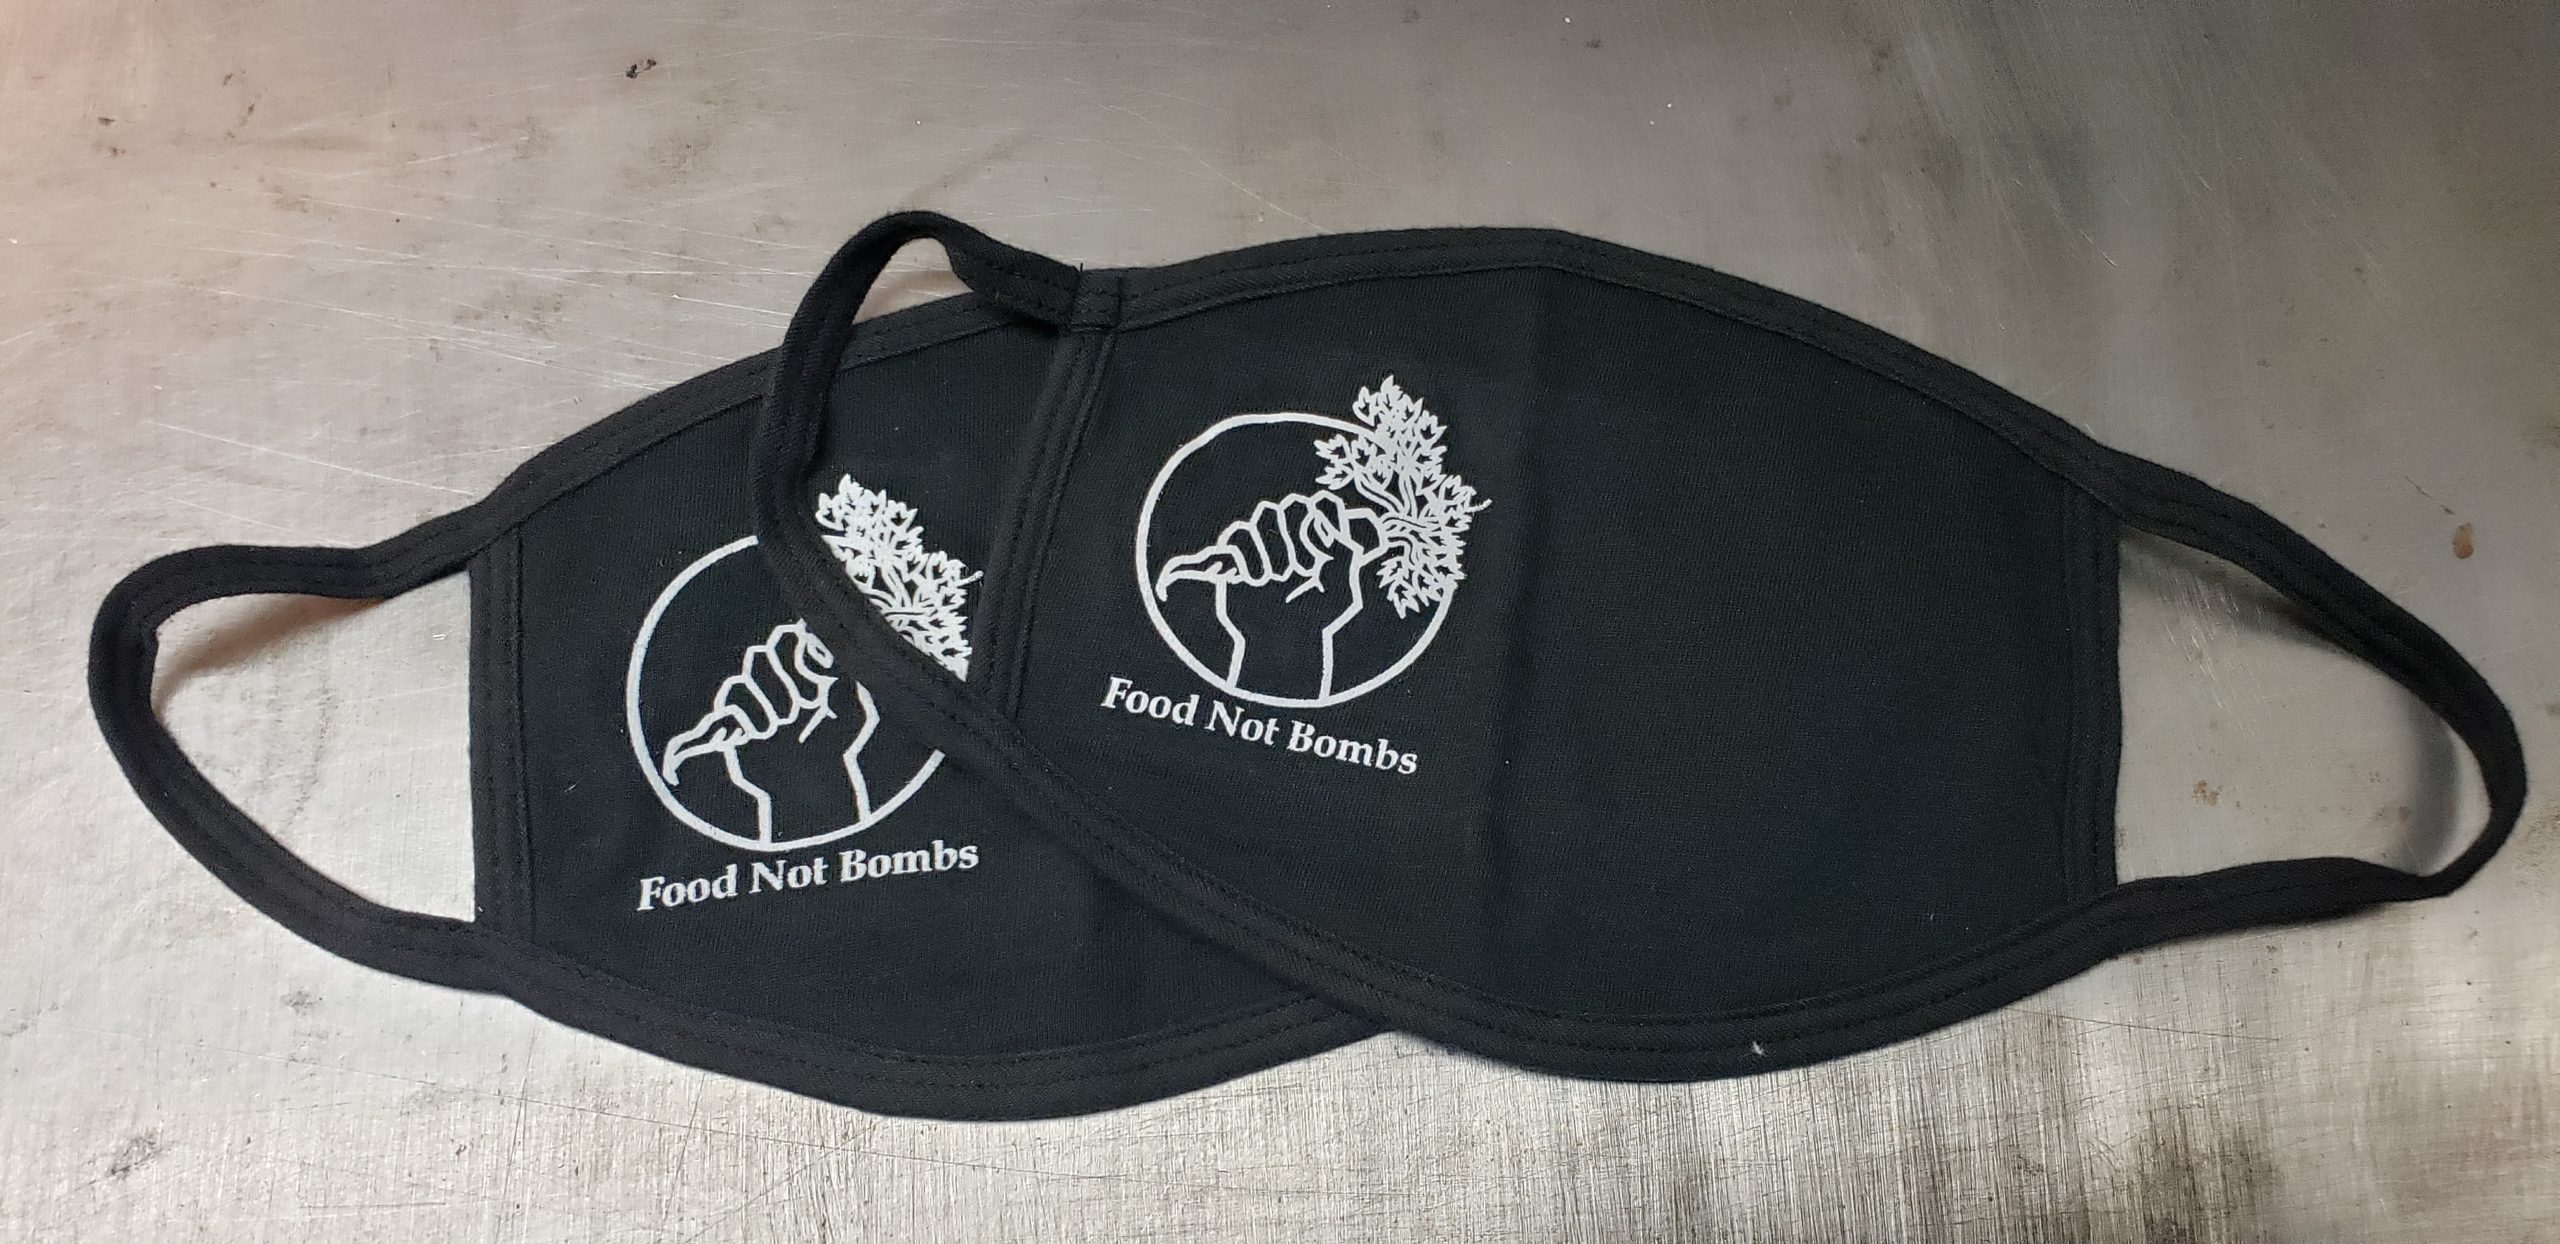 """Two stacked black cotton face masks with union screen printed one color design reading, """"Food Not Bombs"""" with the humanitarian aid organization's logo of a clenched fist raised holding a carrot in an otherwise empty circle"""